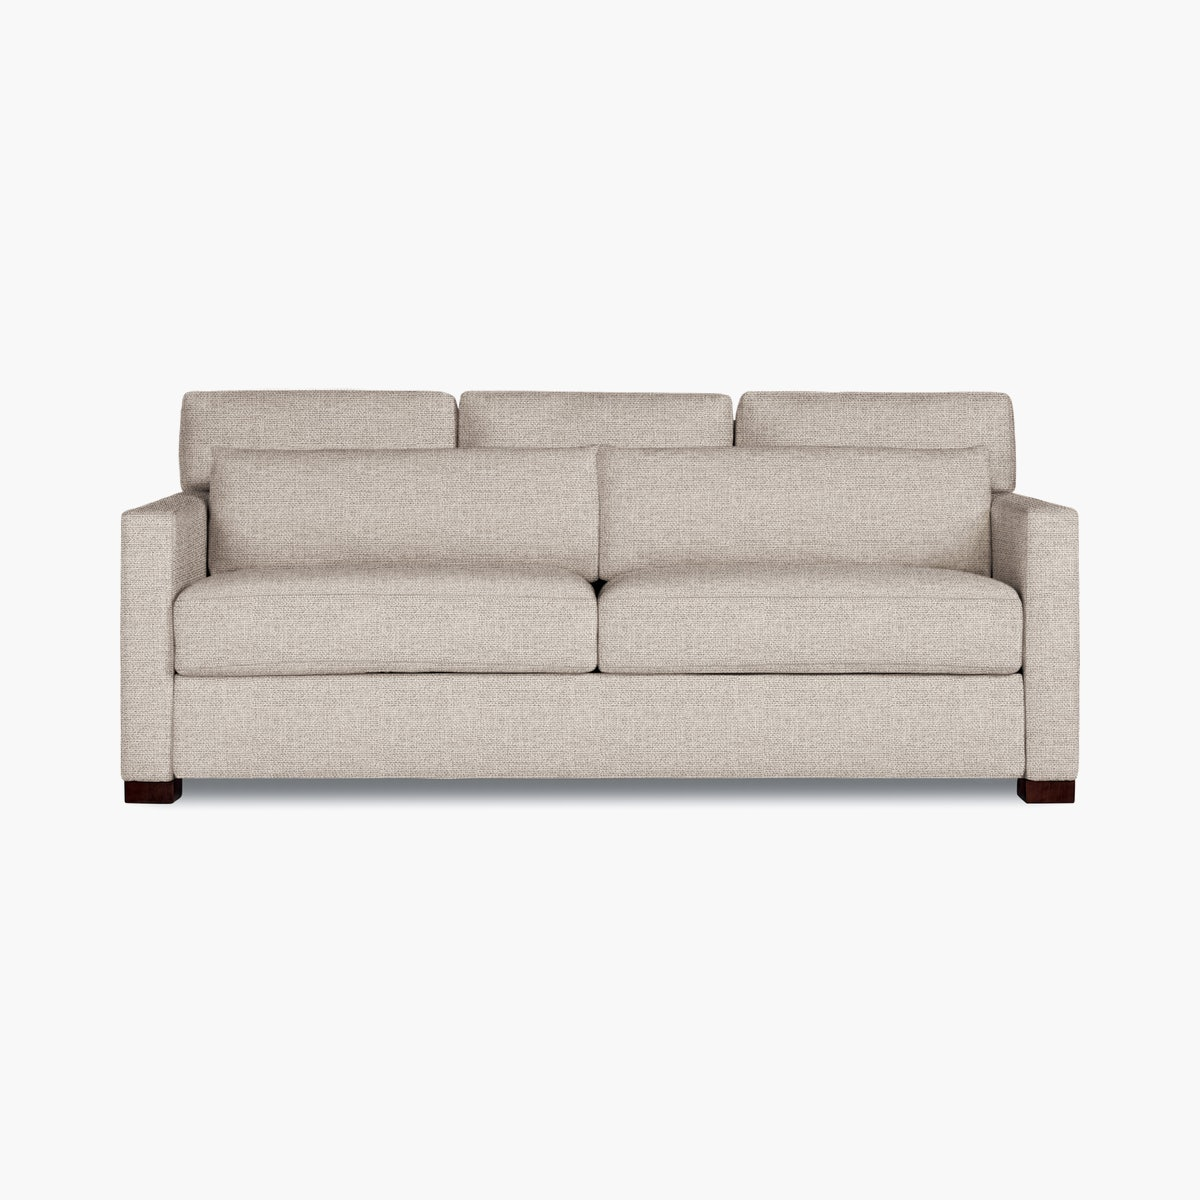 Vesper Sleeper Sofa